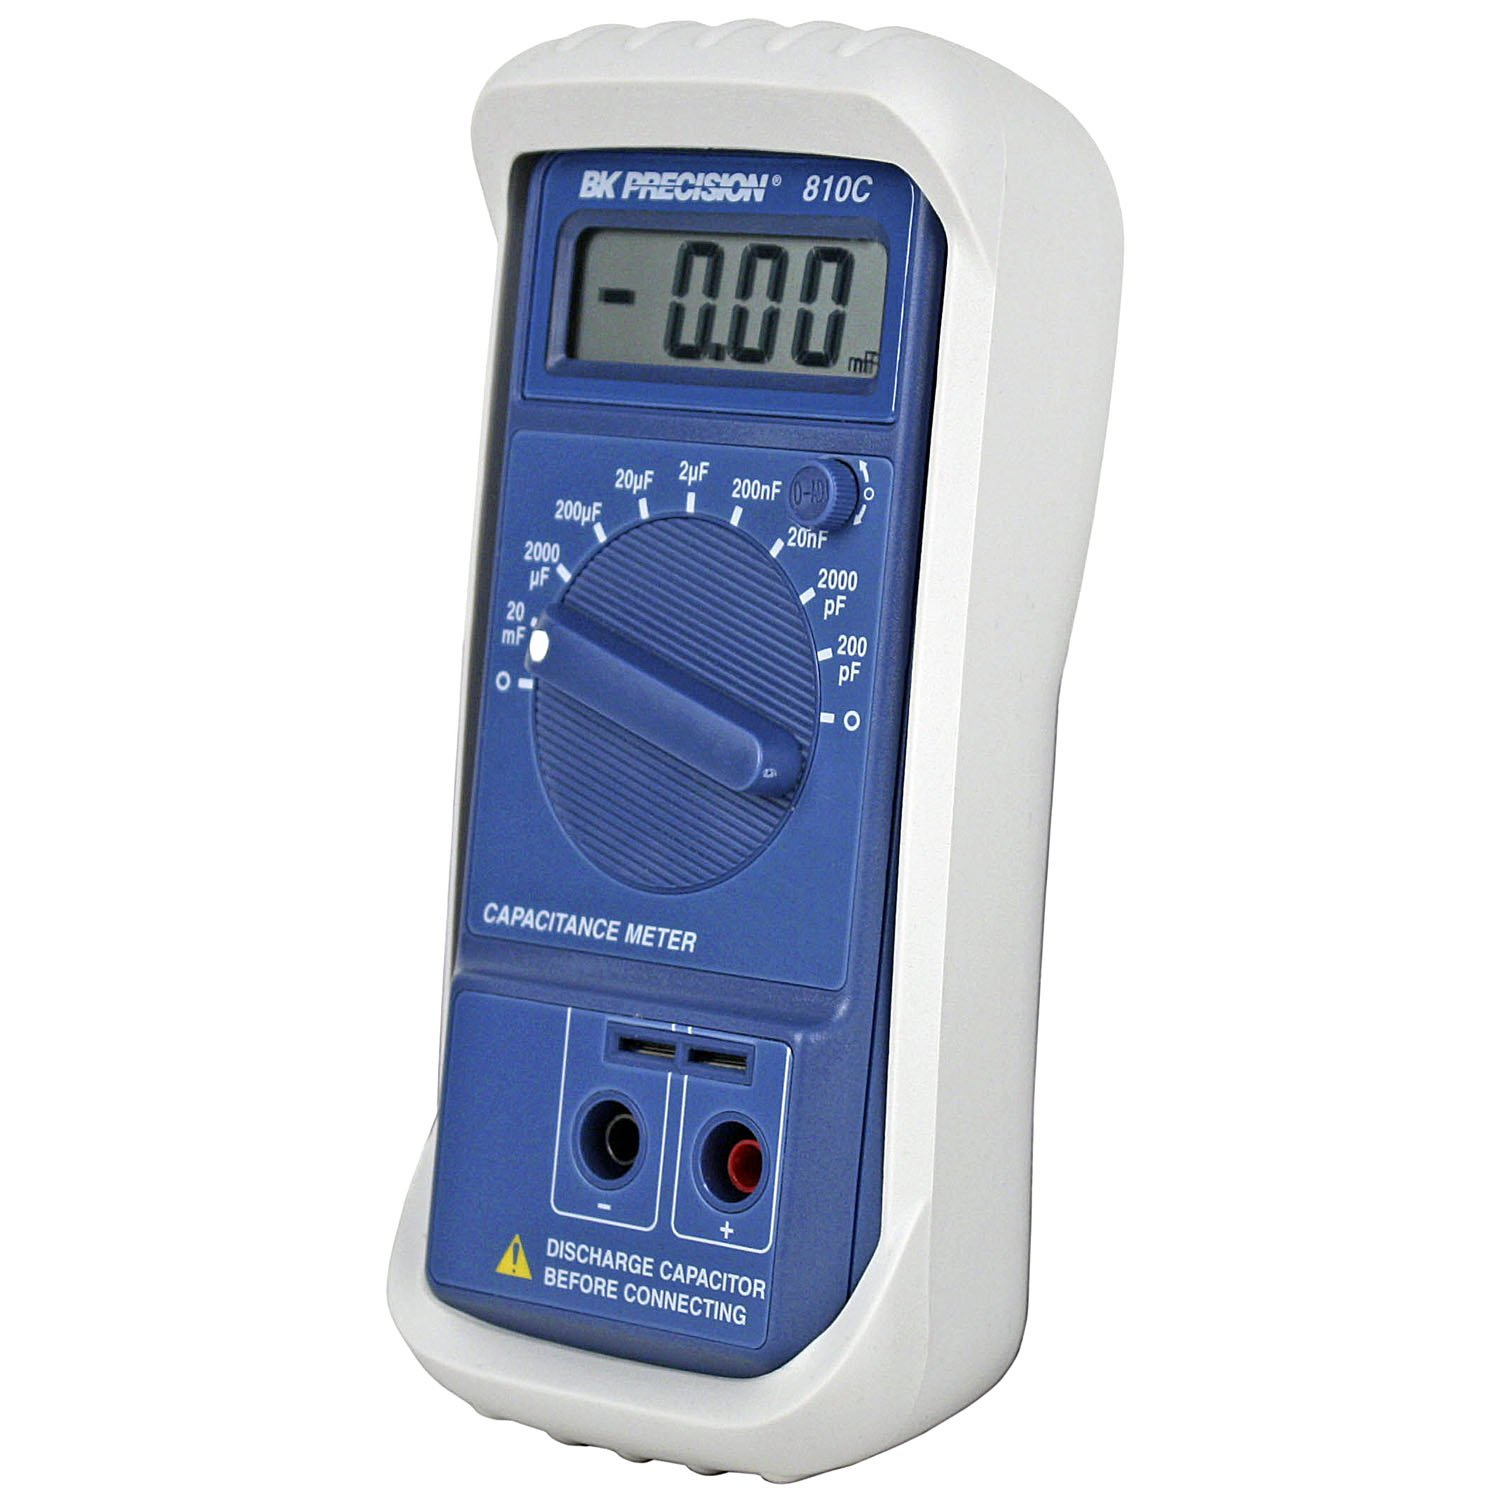 Bk Precision 810c Compact Capacitance Meter Capacitor What Device Is Used To Check Capacitors In Electronic Circuits Industrial Scientific